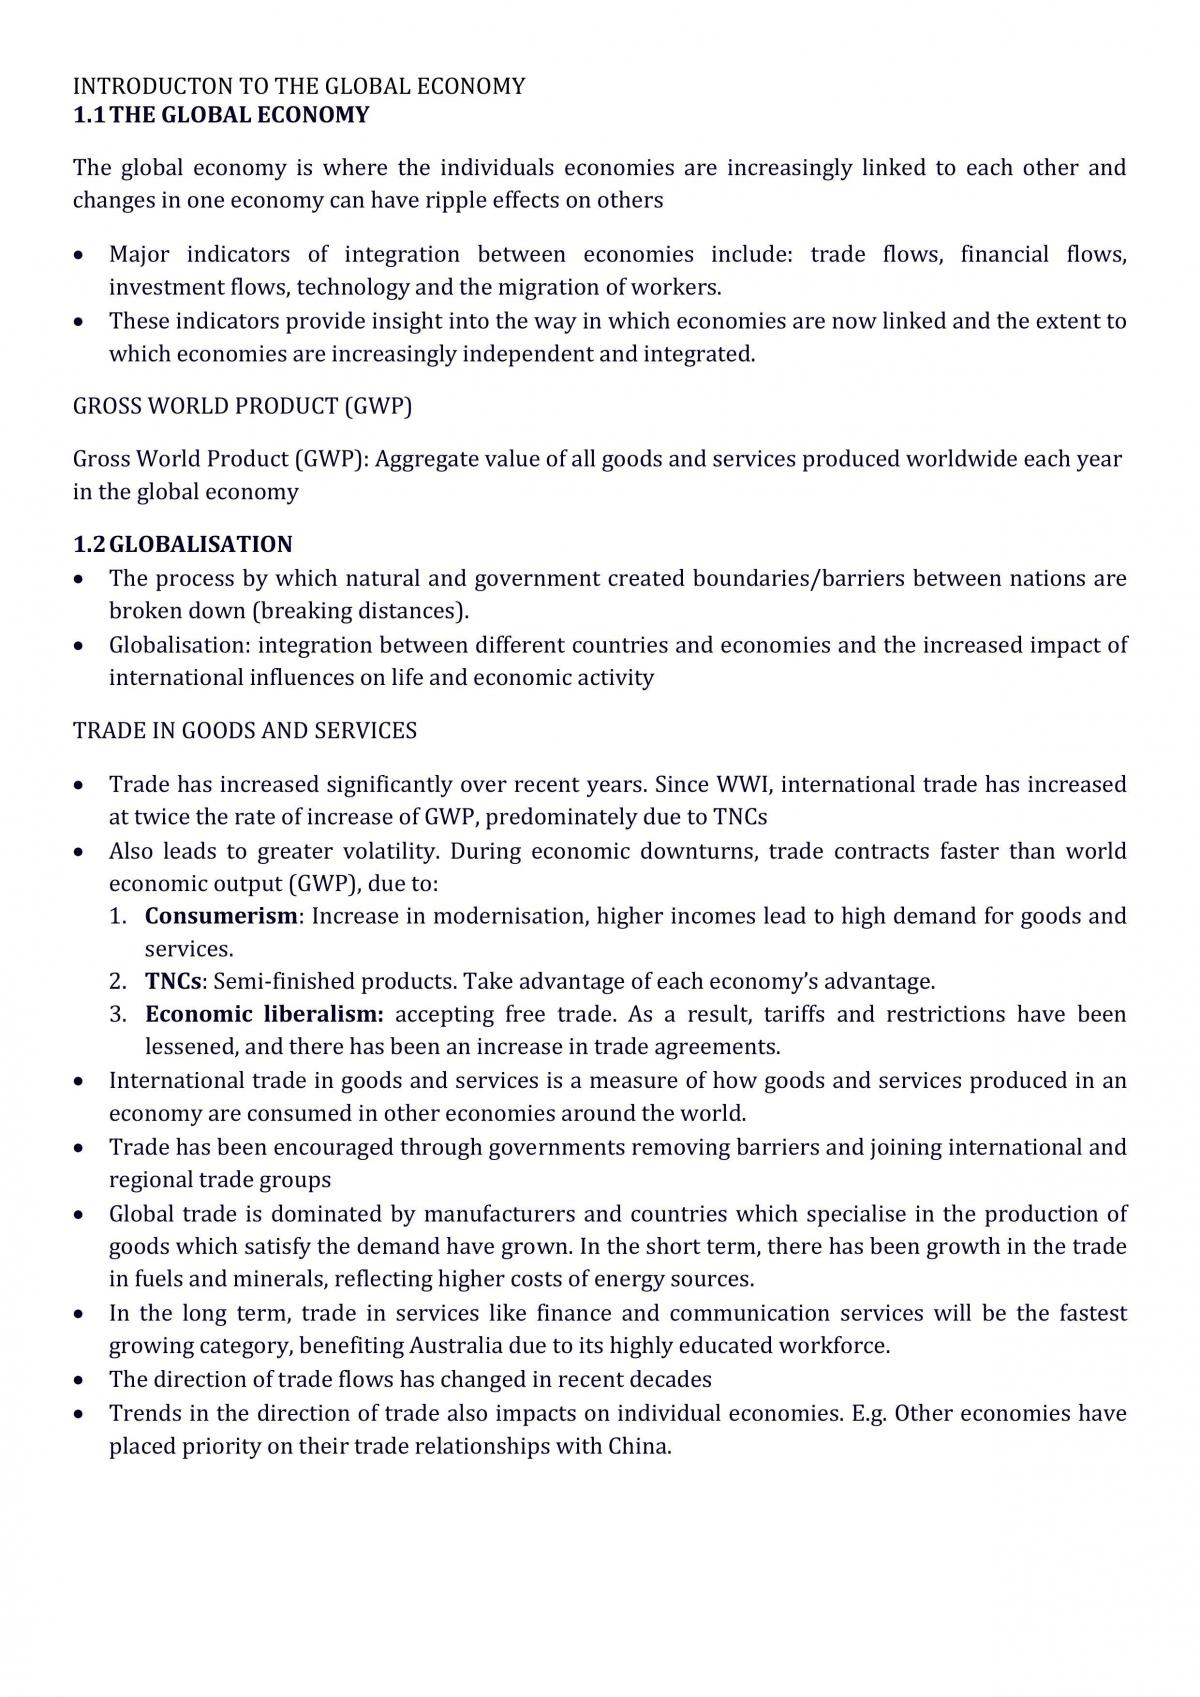 Introduction to the Global Economy  - Page 1